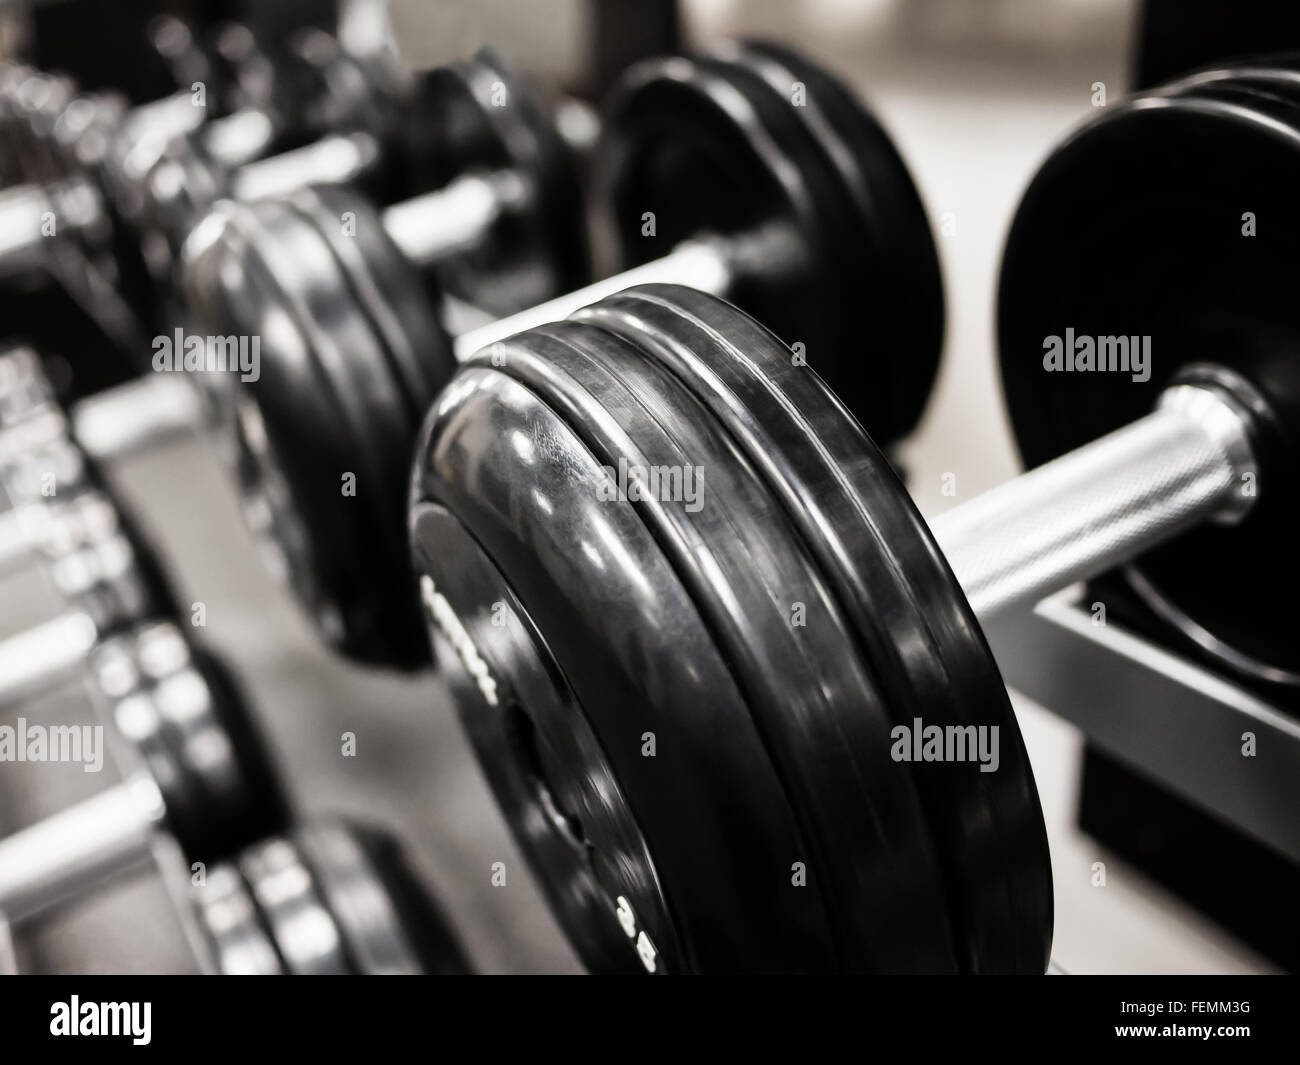 Dumbbell weights on a rack at a health club gym - Stock Image